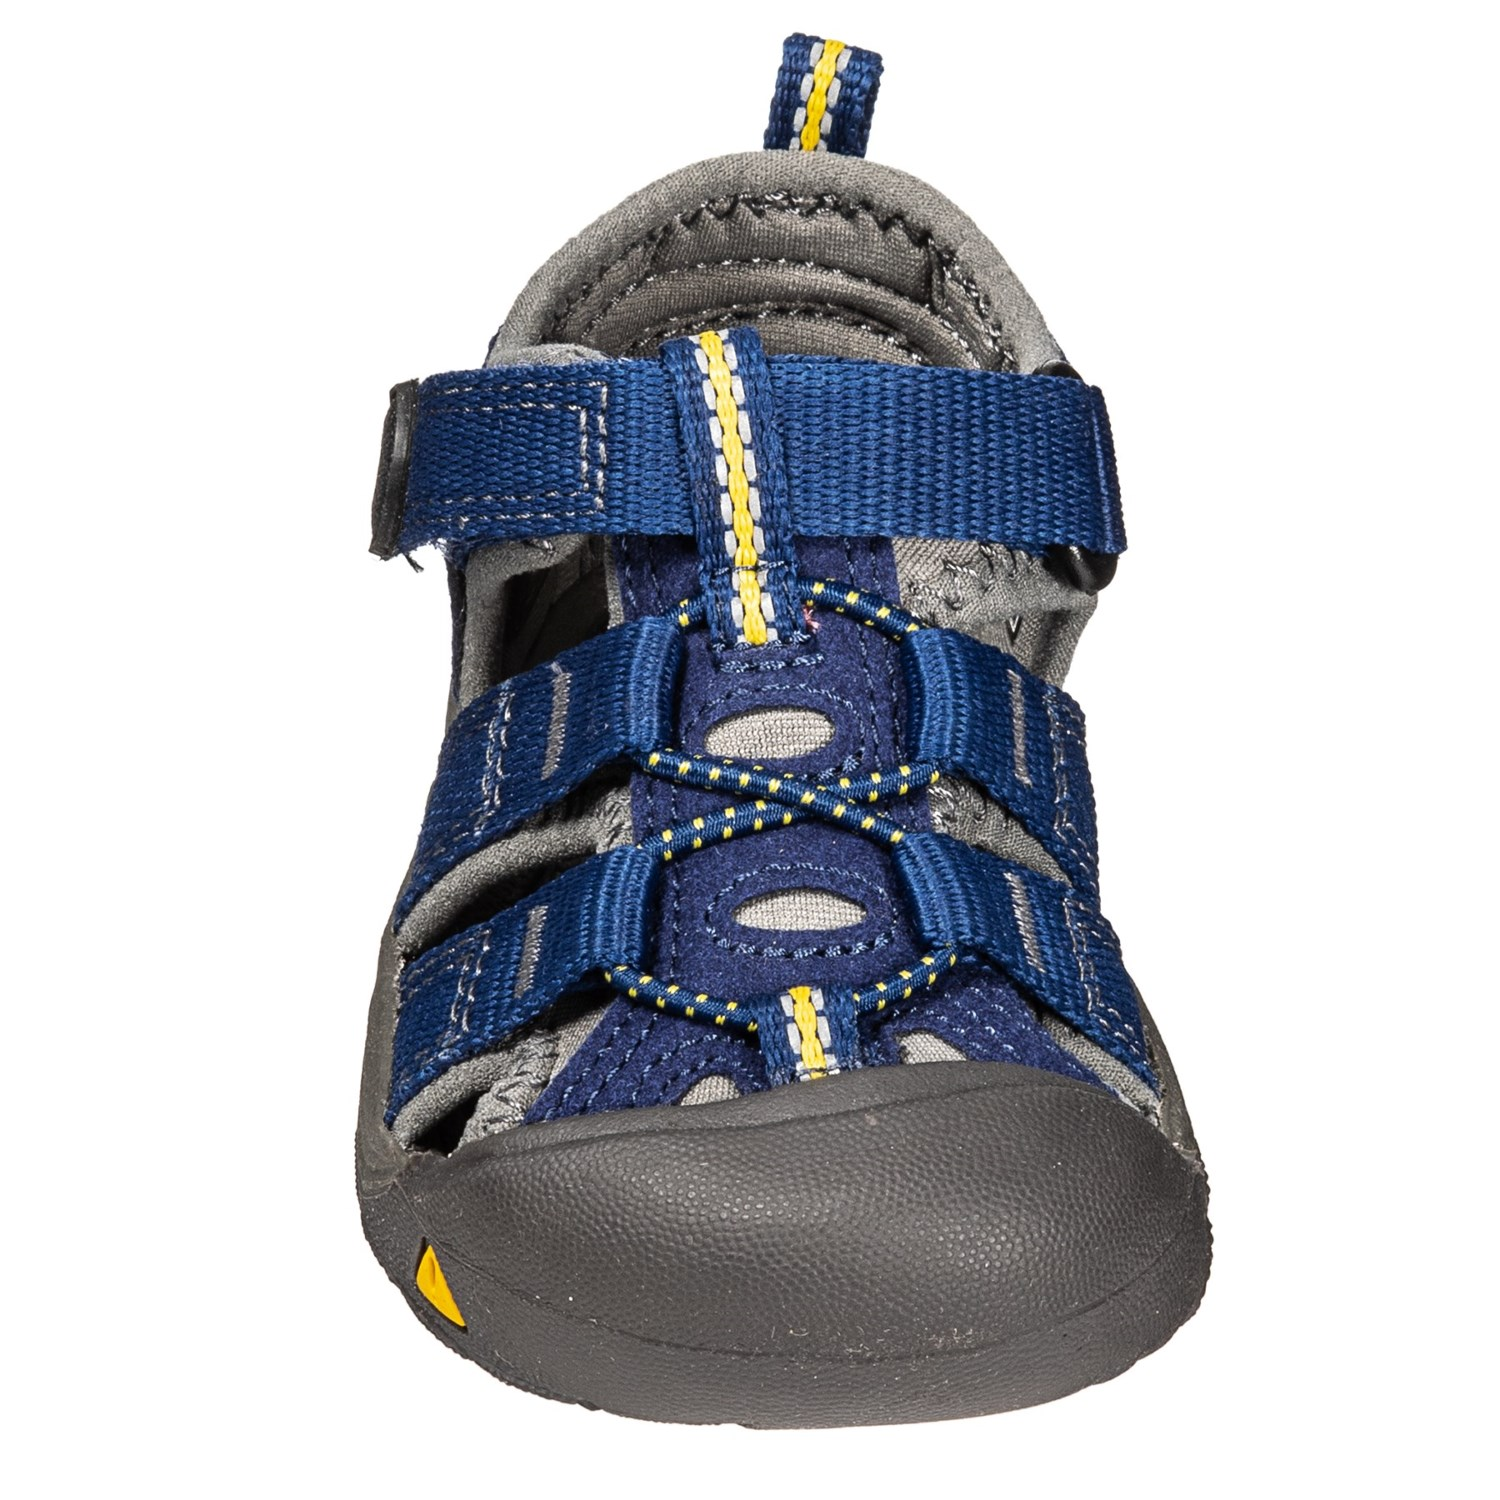 347c97de7b Keen Newport H2 Sandals (For Toddlers) - Save 33%